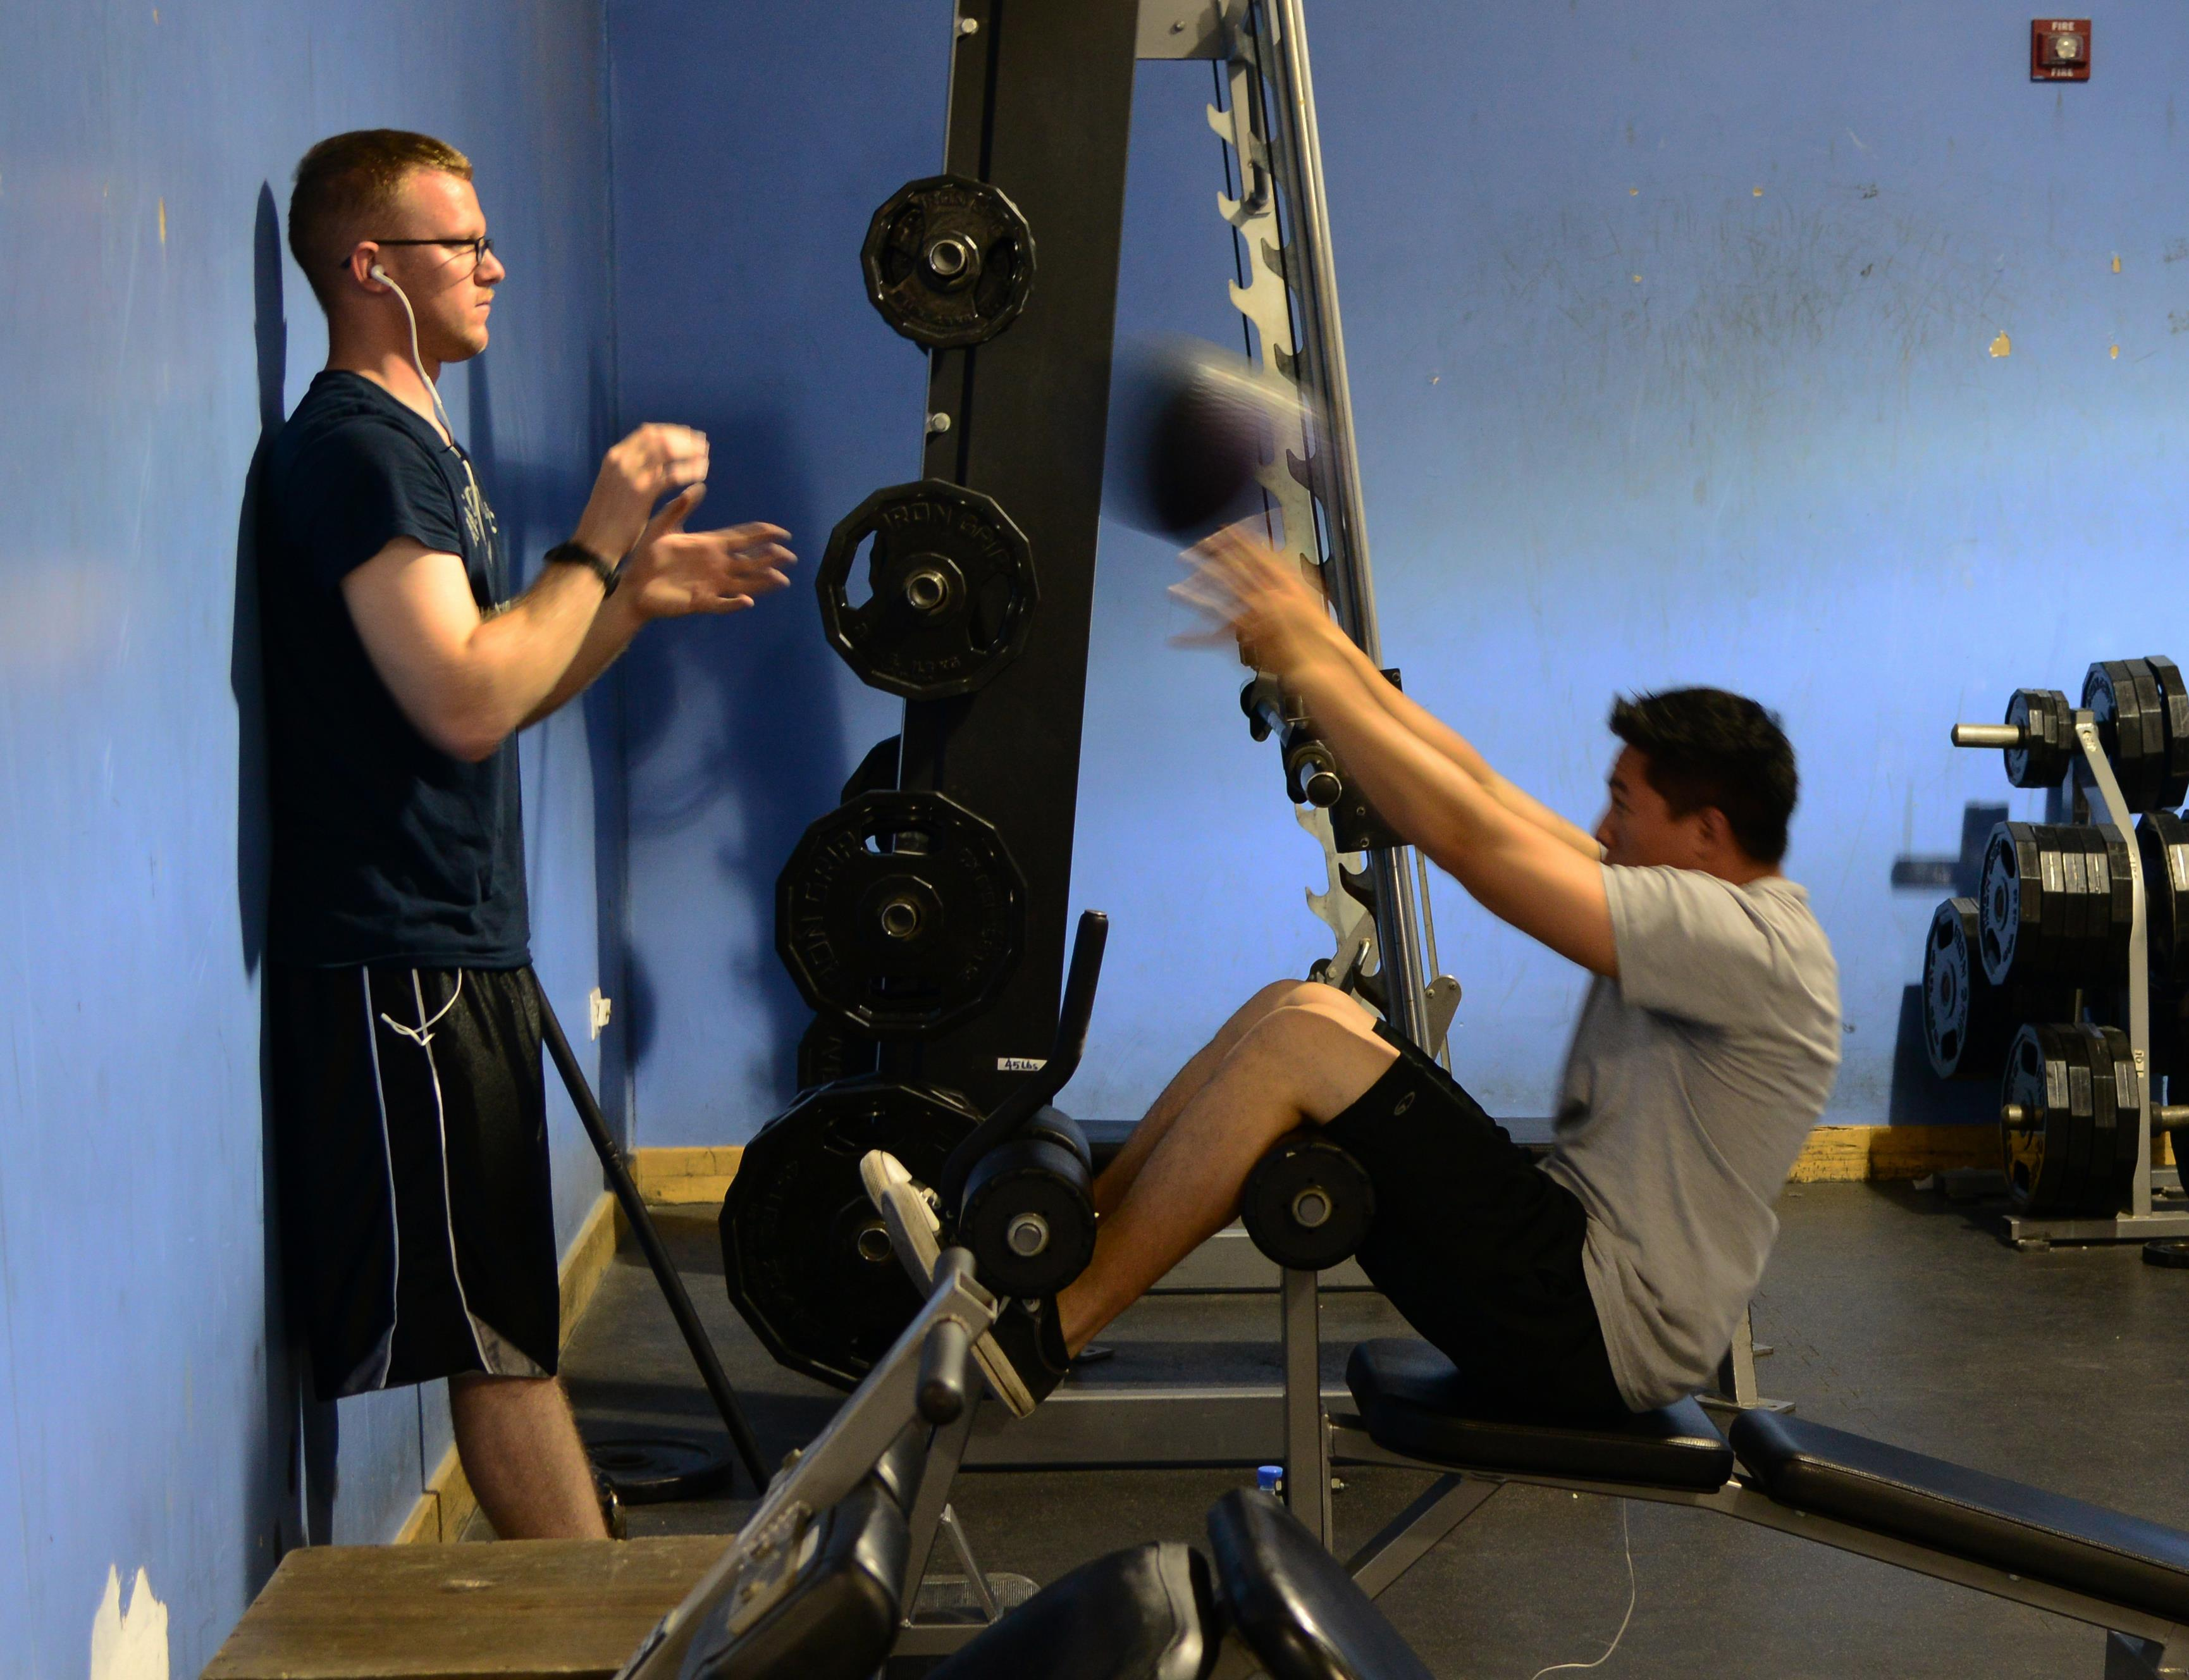 Servicemembers work out at the blatchford preston complex